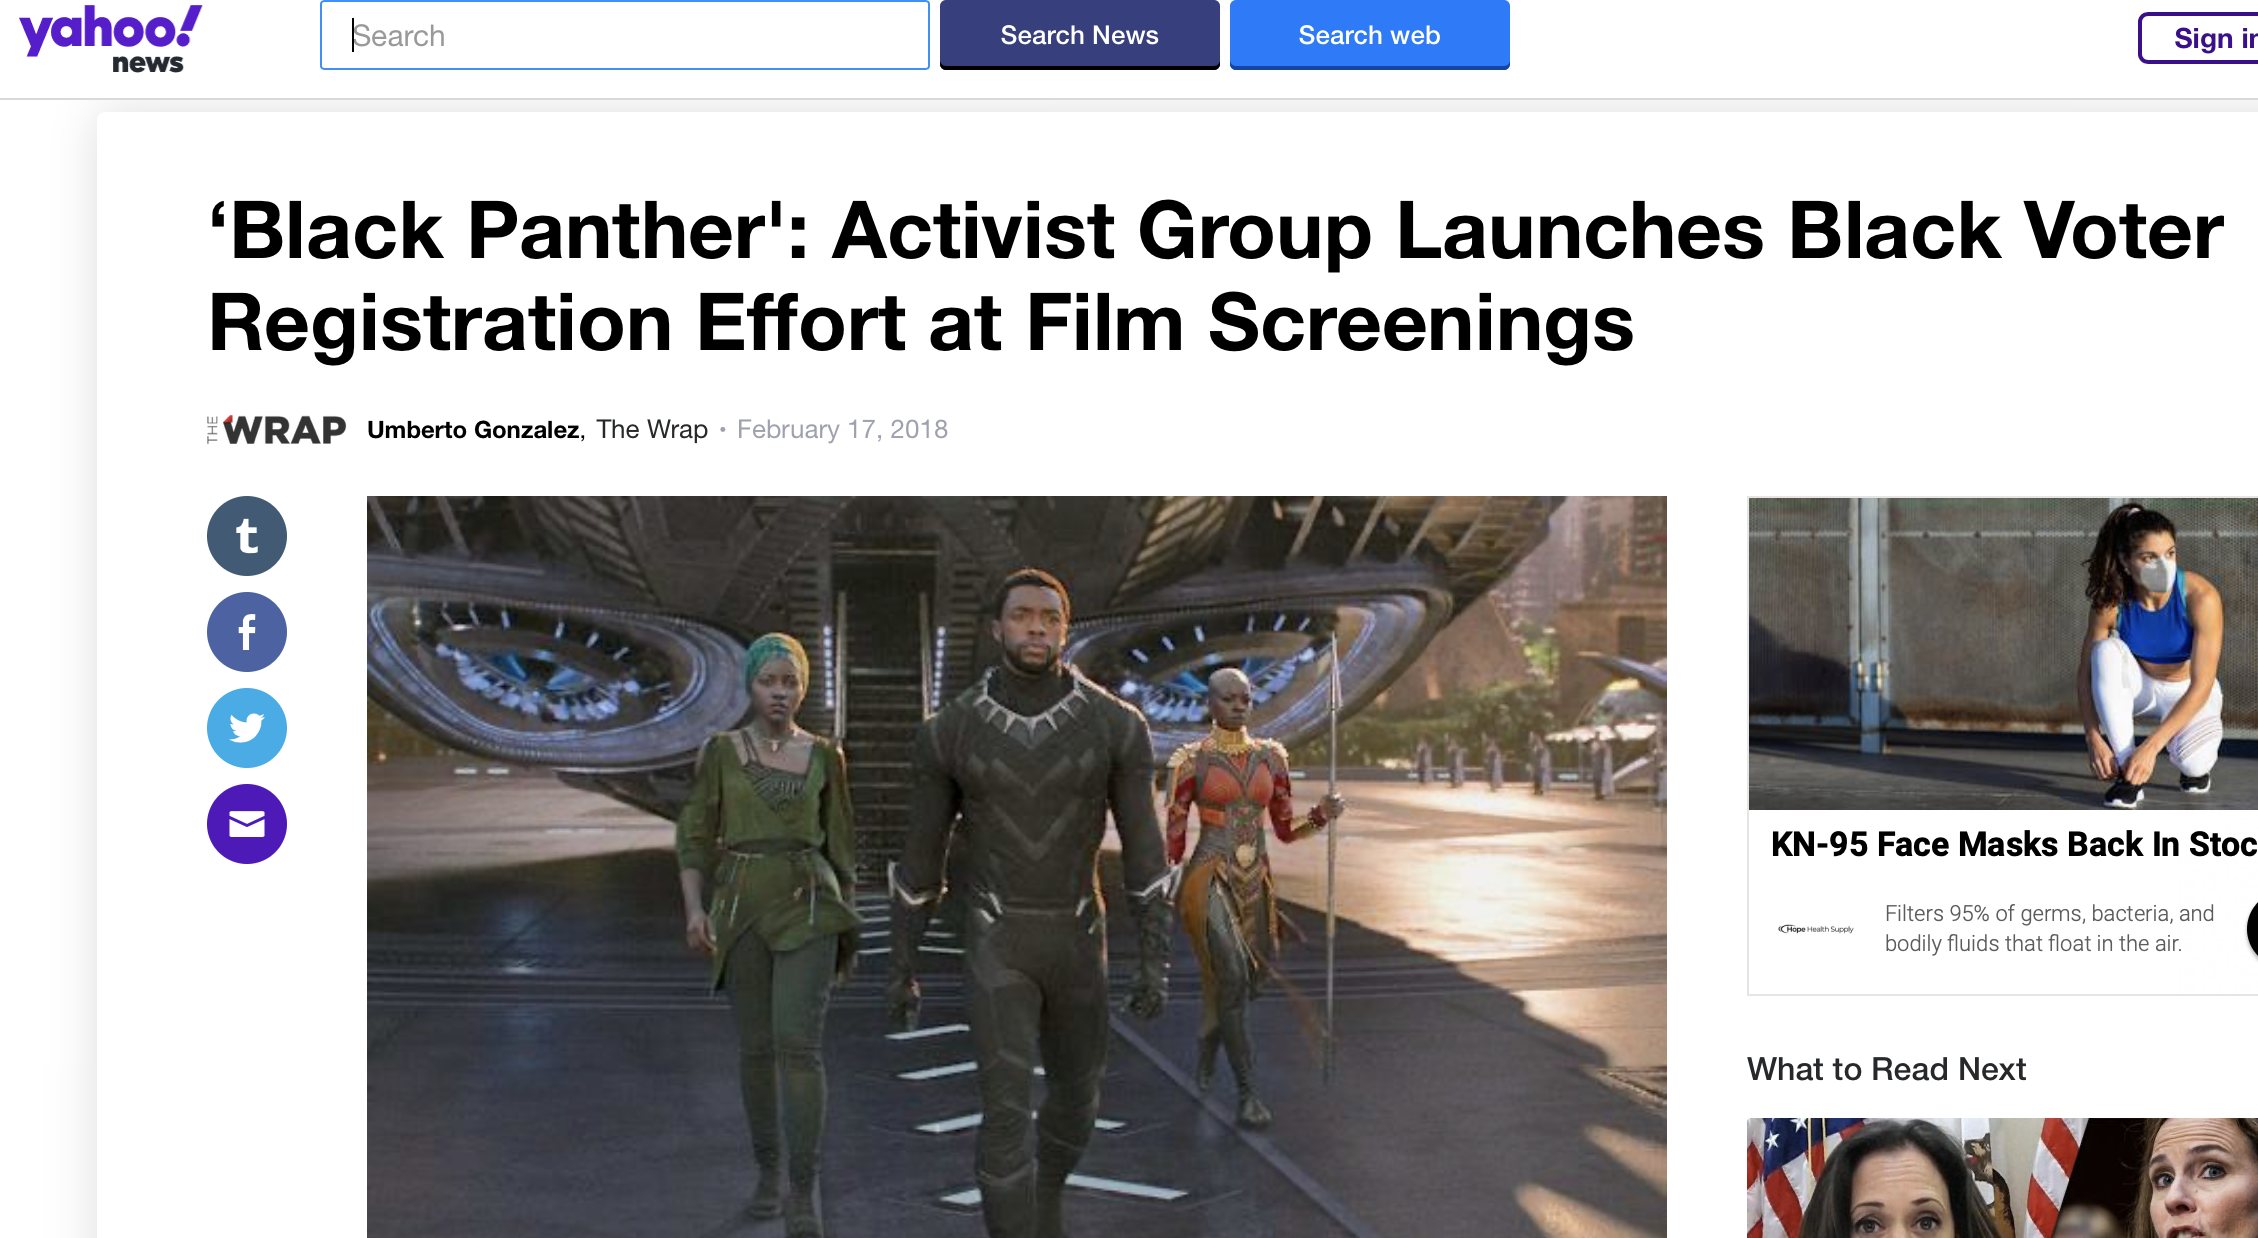 'Black Panther': Activist Group Launches Black Voter Registration Effort at Film Screenings